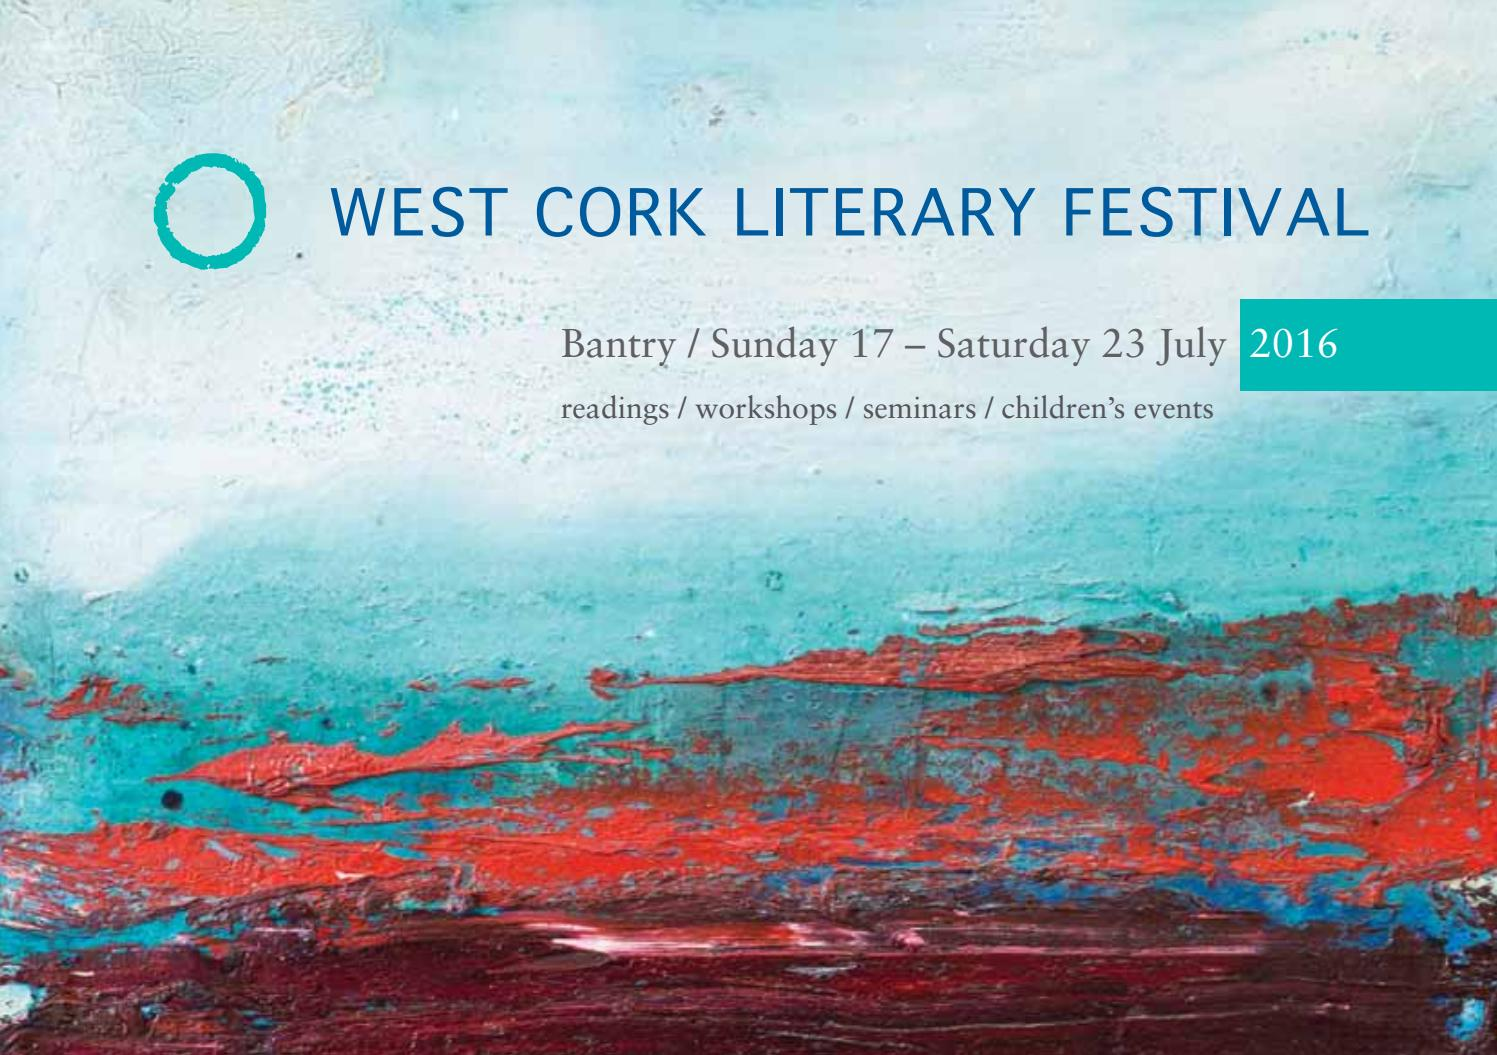 West Cork Literary Festival 2016 Brochure by West Cork Music